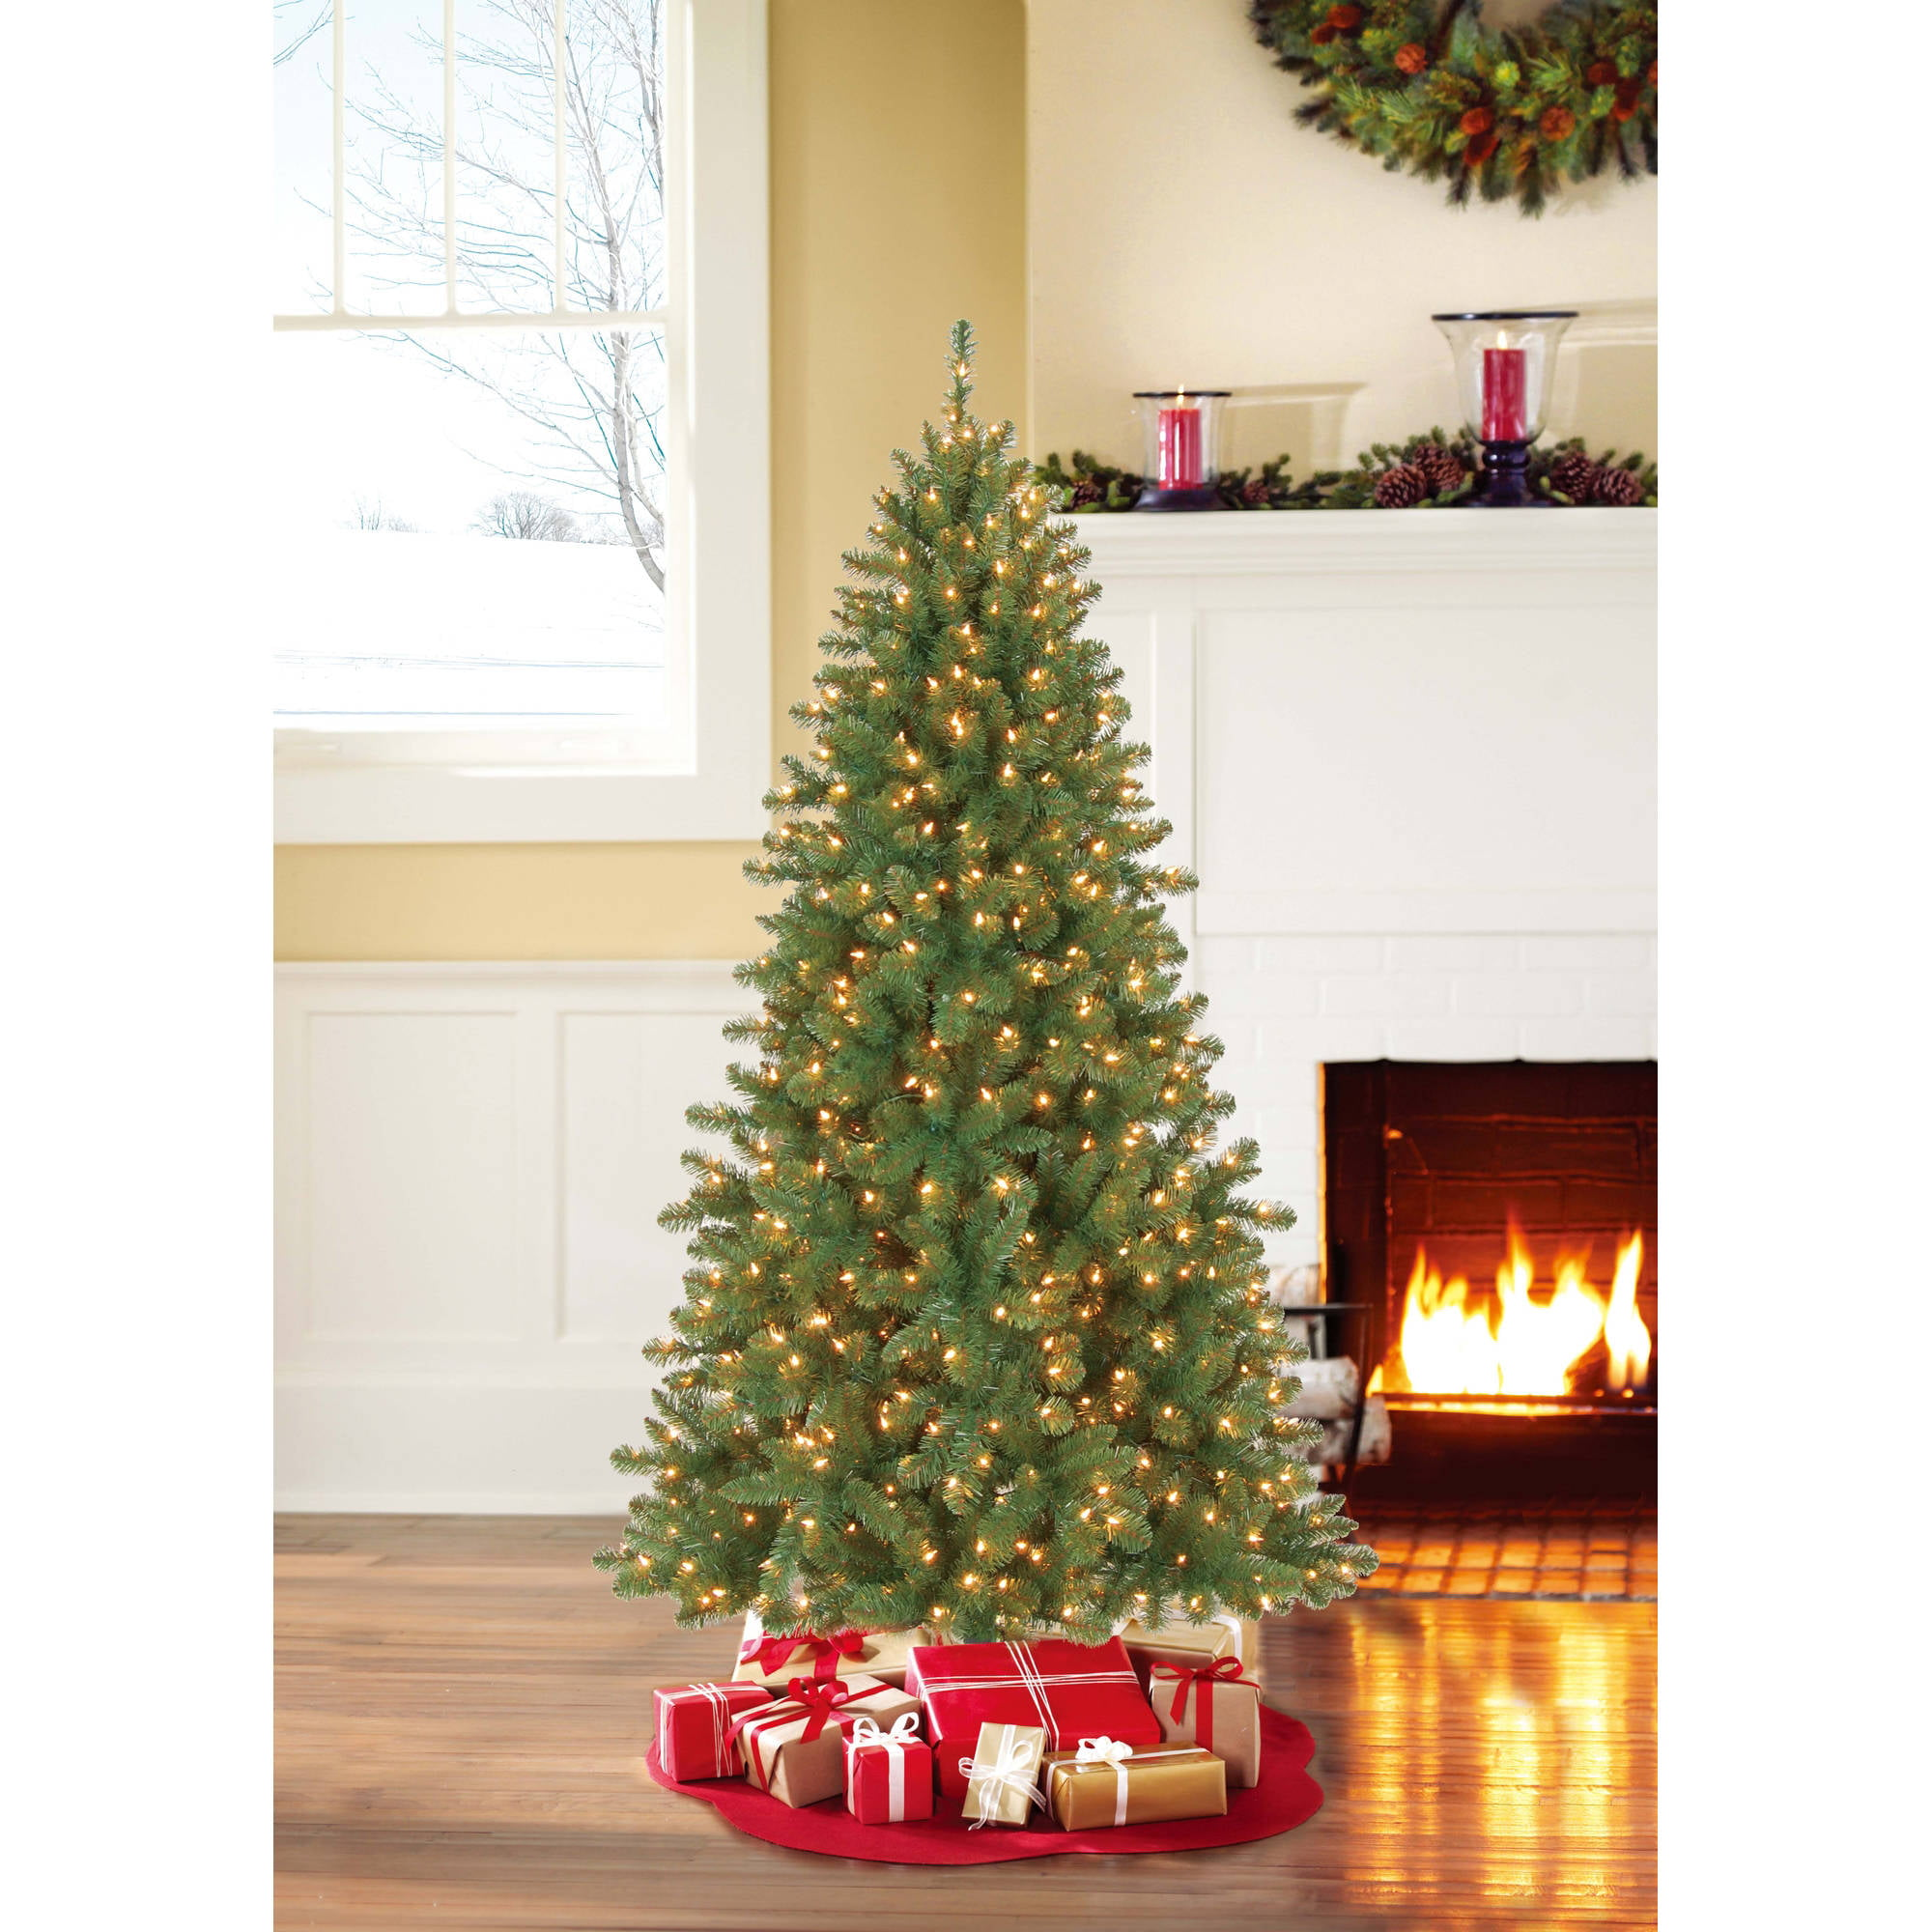 holiday time 32 inch white fiber optic tree 83 tips with continuously changing color walmartcom - Walmart Christmas Decorations Indoor